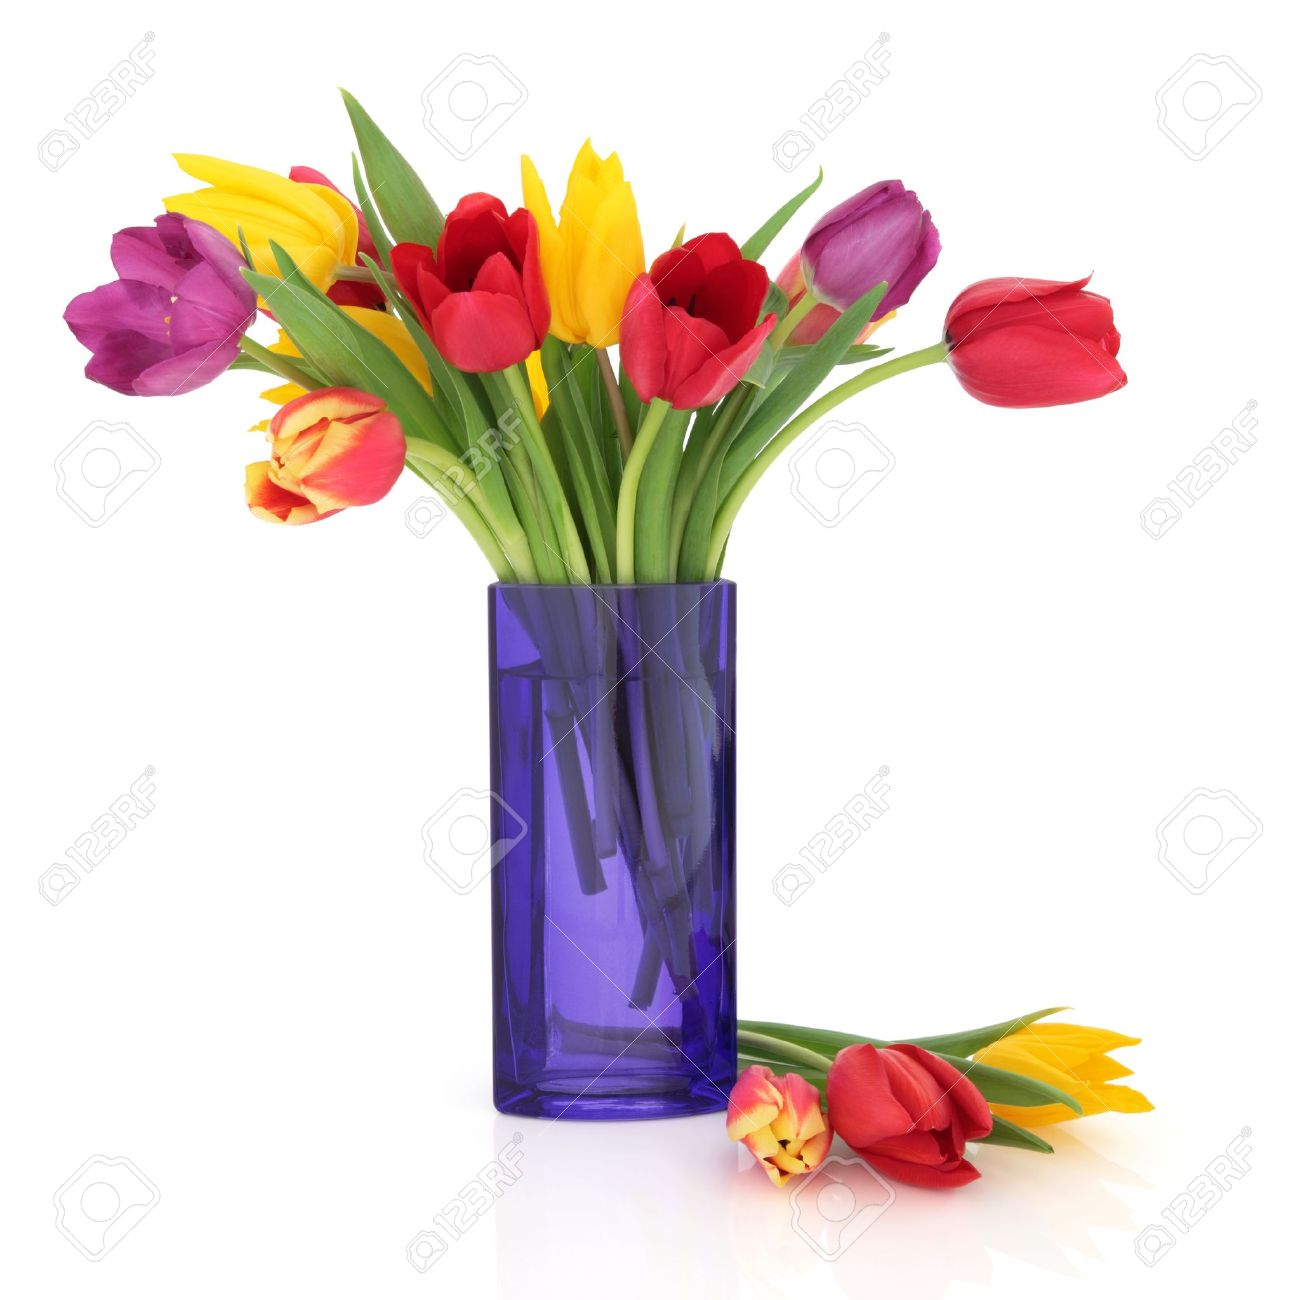 Tulip flowers in rainbow colours in a blue glass vase and loose isolated over white background. Stock Photo - 9601871